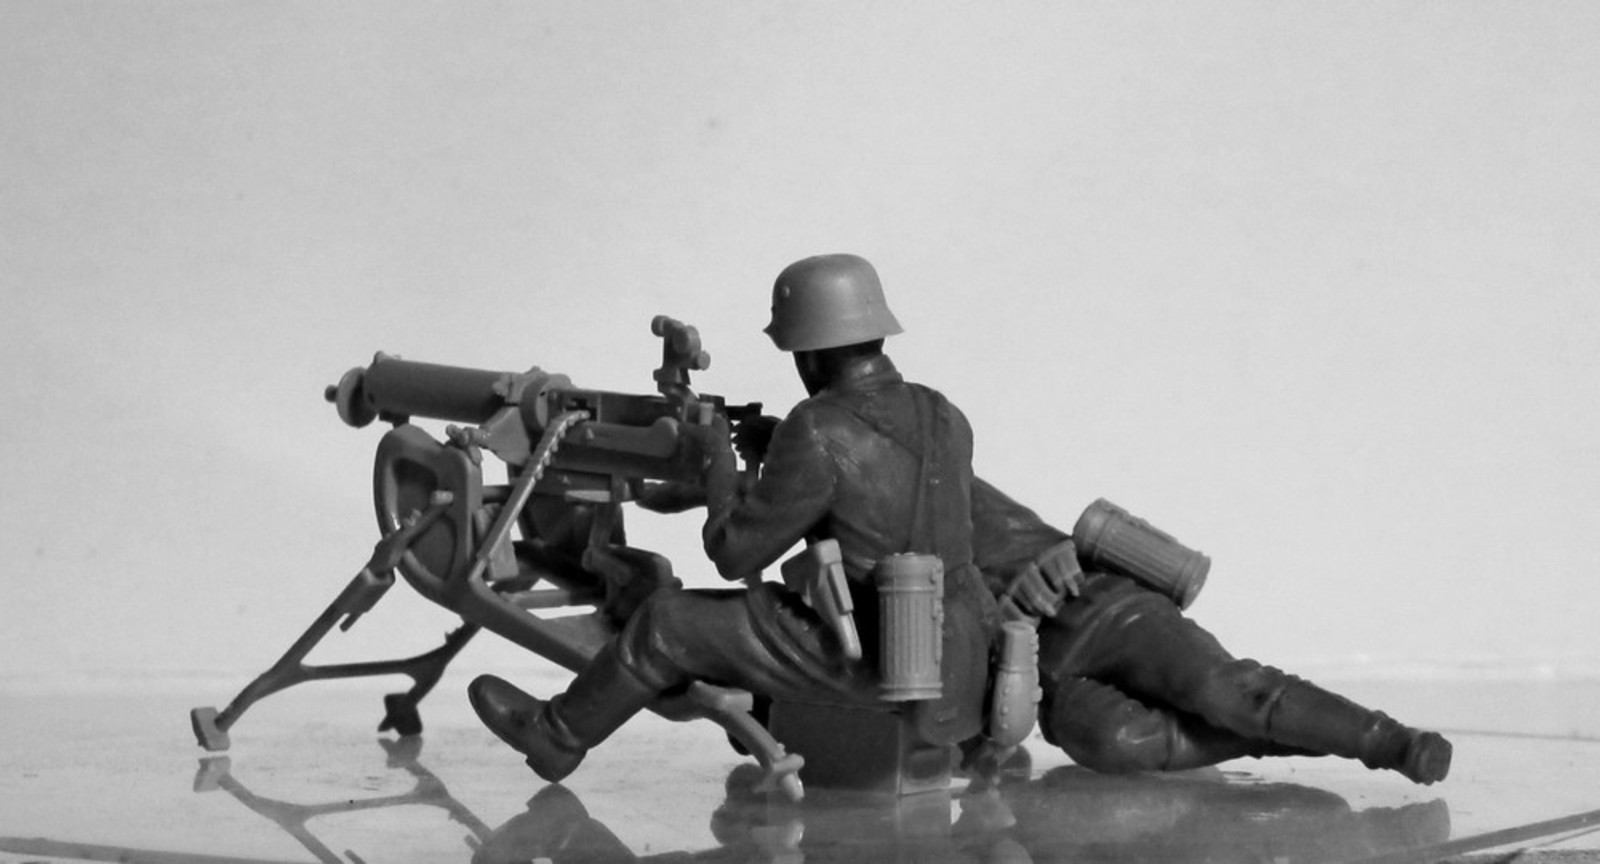 1/35 WWII German MG08 MG Team (2 figures) (100% new molds) 35645